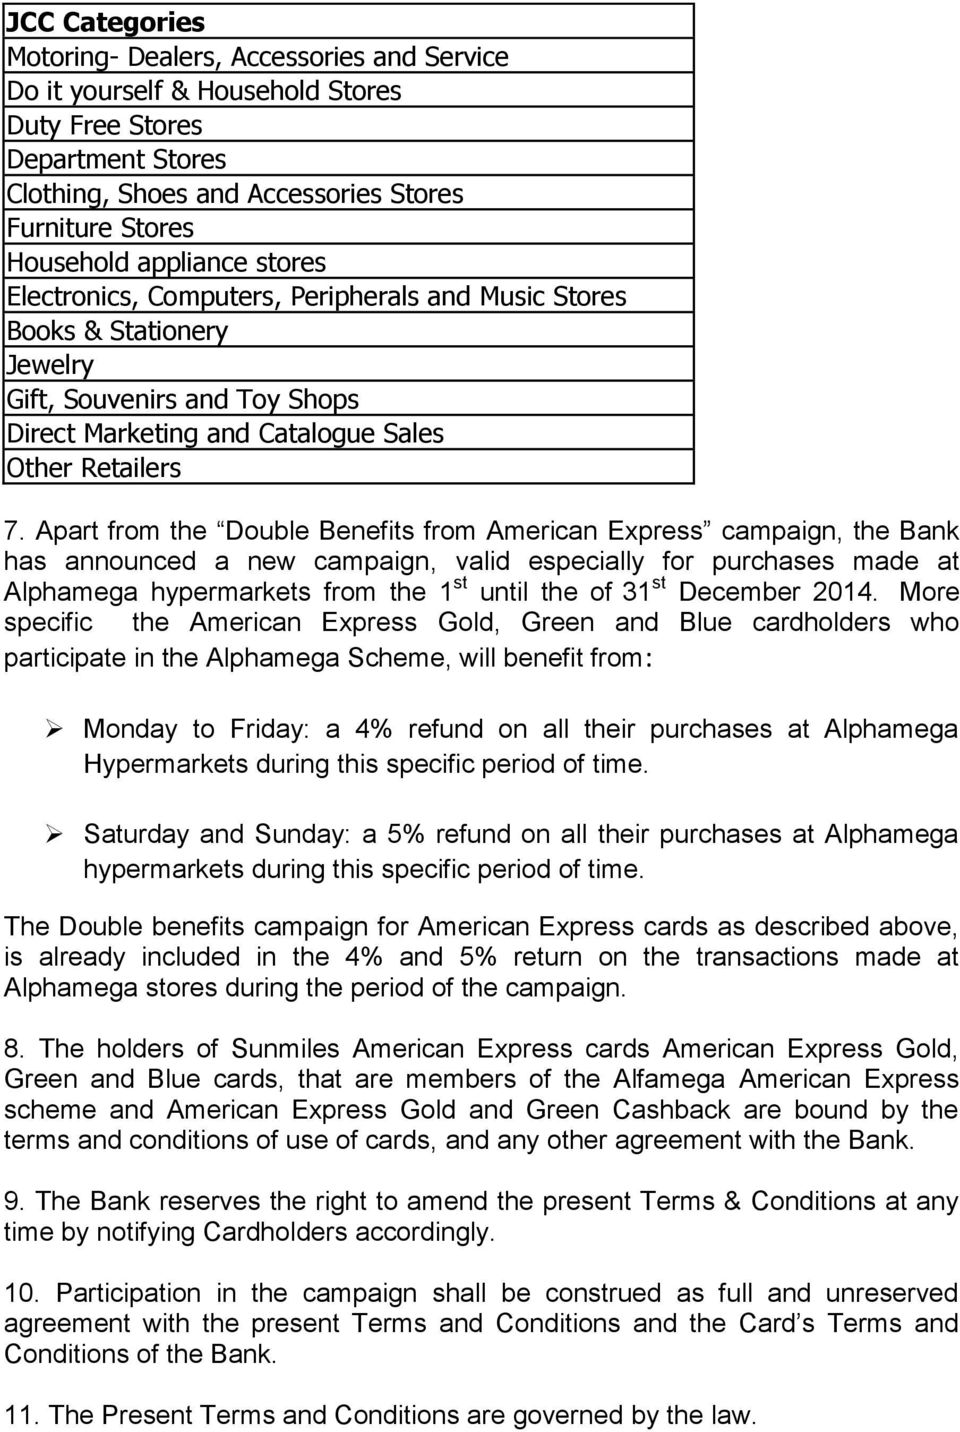 Apart from the Double Benefits from American Express campaign, the Bank has announced a new campaign, valid especially for purchases made at Alphamega hypermarkets from the 1 st until the of 31 st